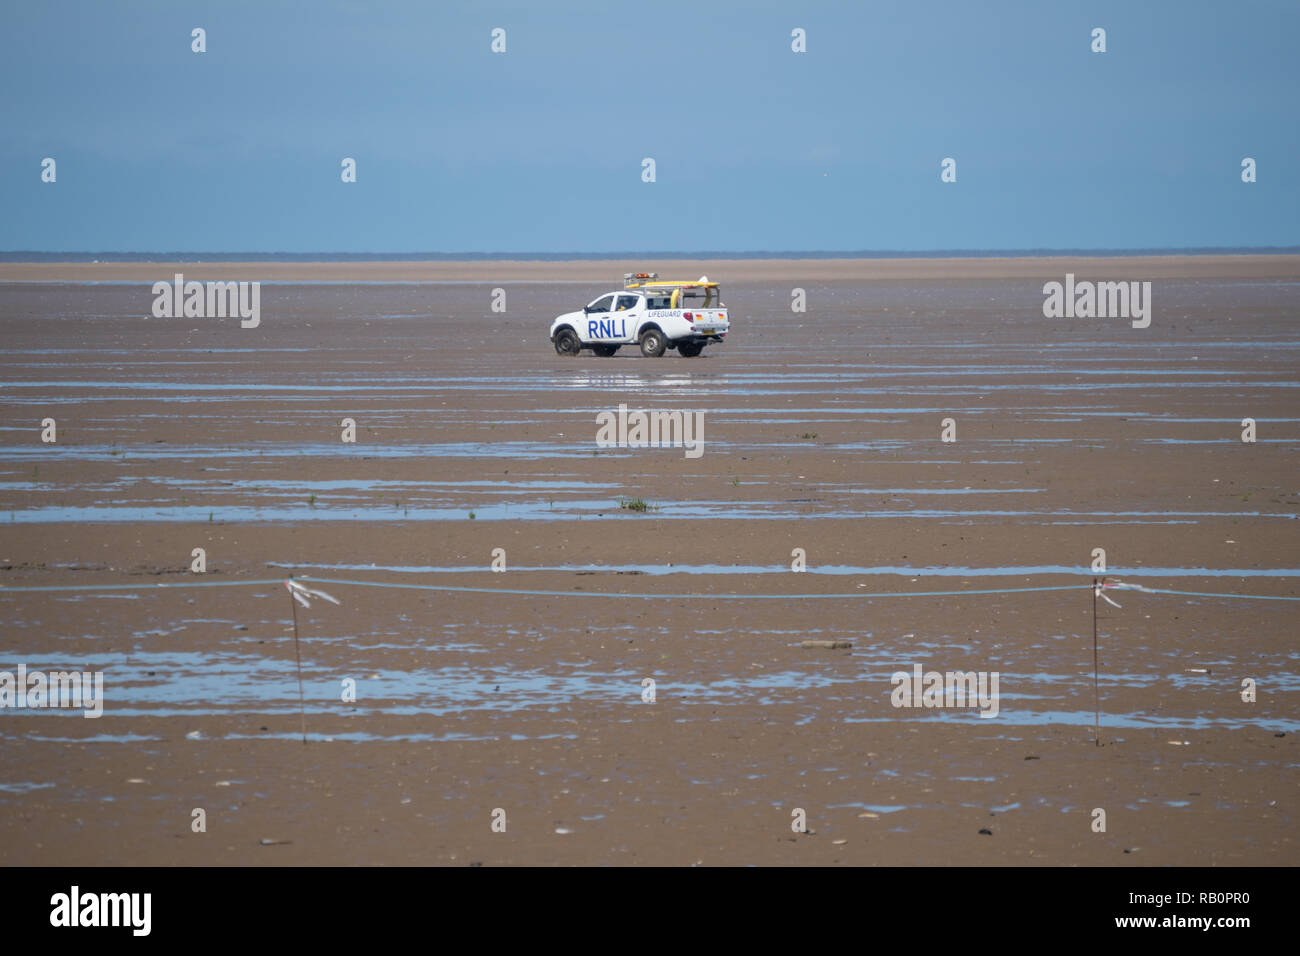 RNLI Lifeboat Rescue vehicle patrols the beach in Southport Lancashire - Stock Image